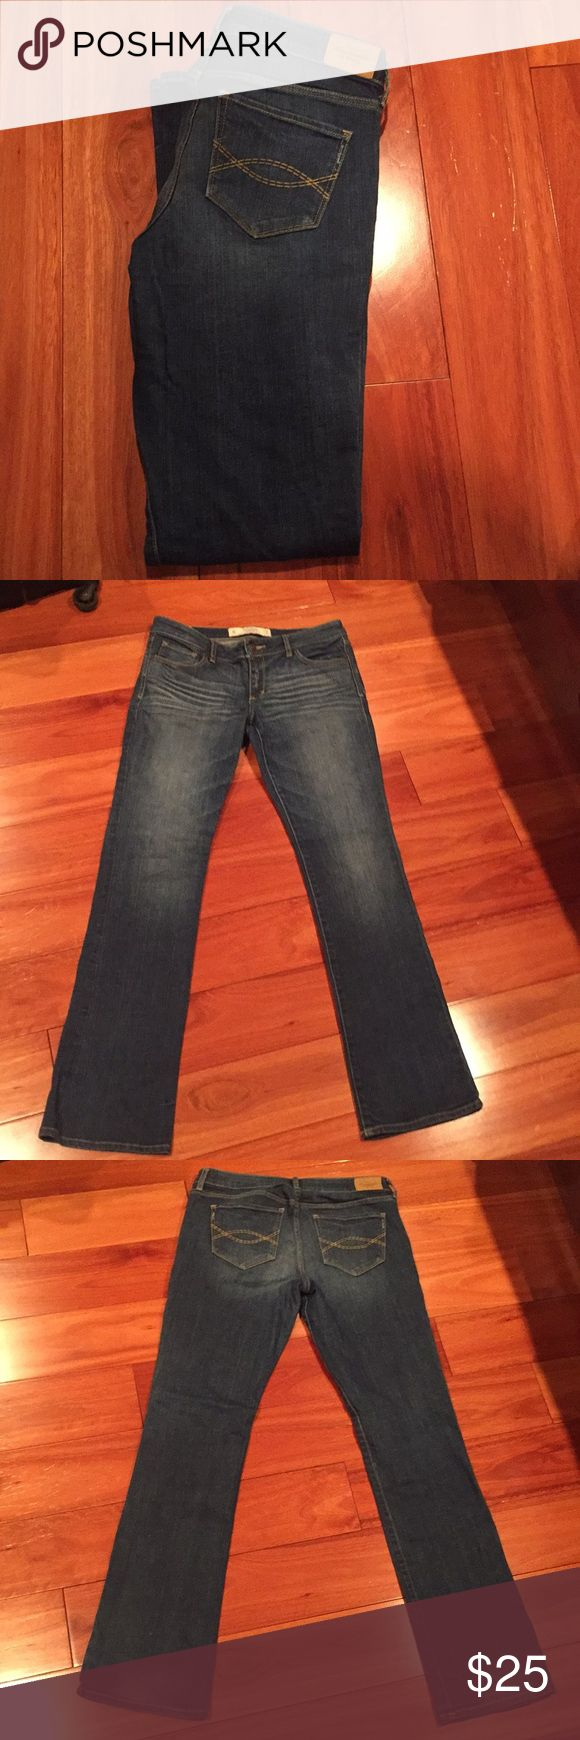 LIKE NEW! Abercrombie and Fitch Jeans Like new!! - worn only once!!  Abercrombie and Fitch bootcut jeans   Size: 8 Regular Waist: 29 Length: 33 Abercrombie & Fitch Jeans Boot Cut